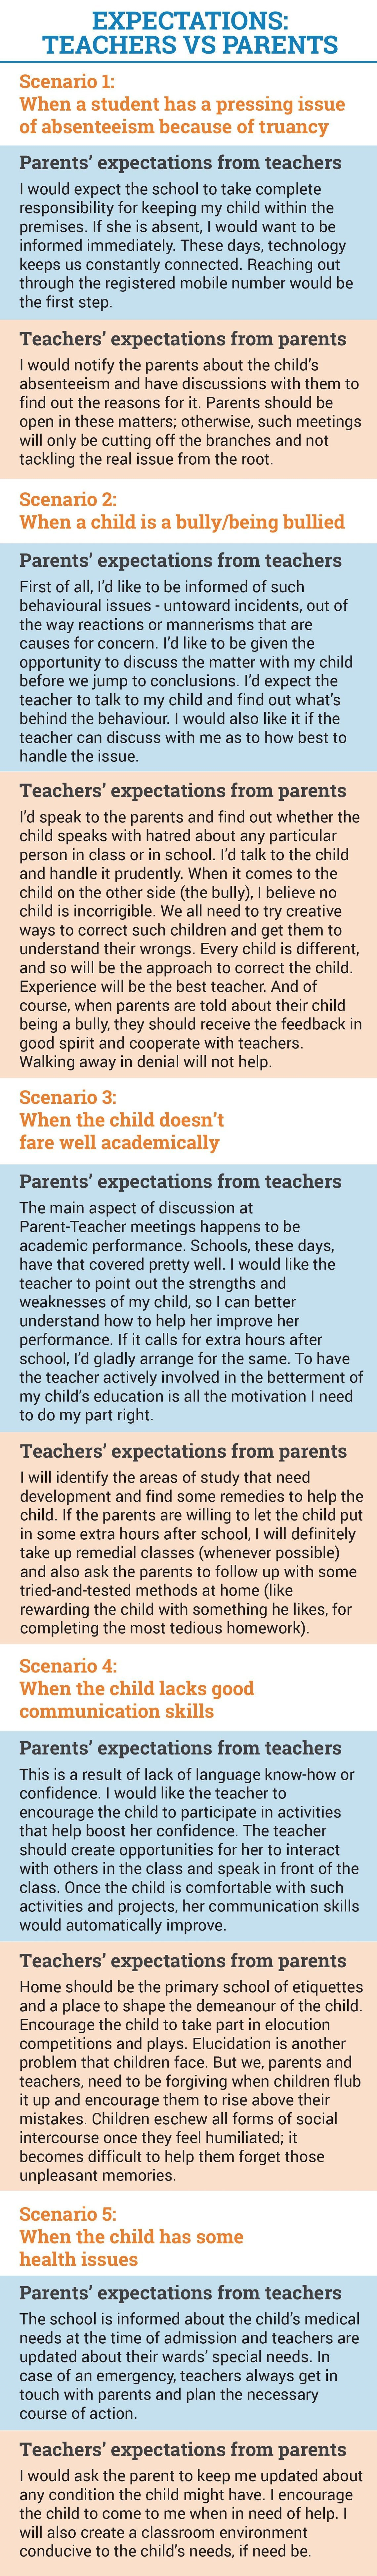 Back to school: teacher and parent partnership